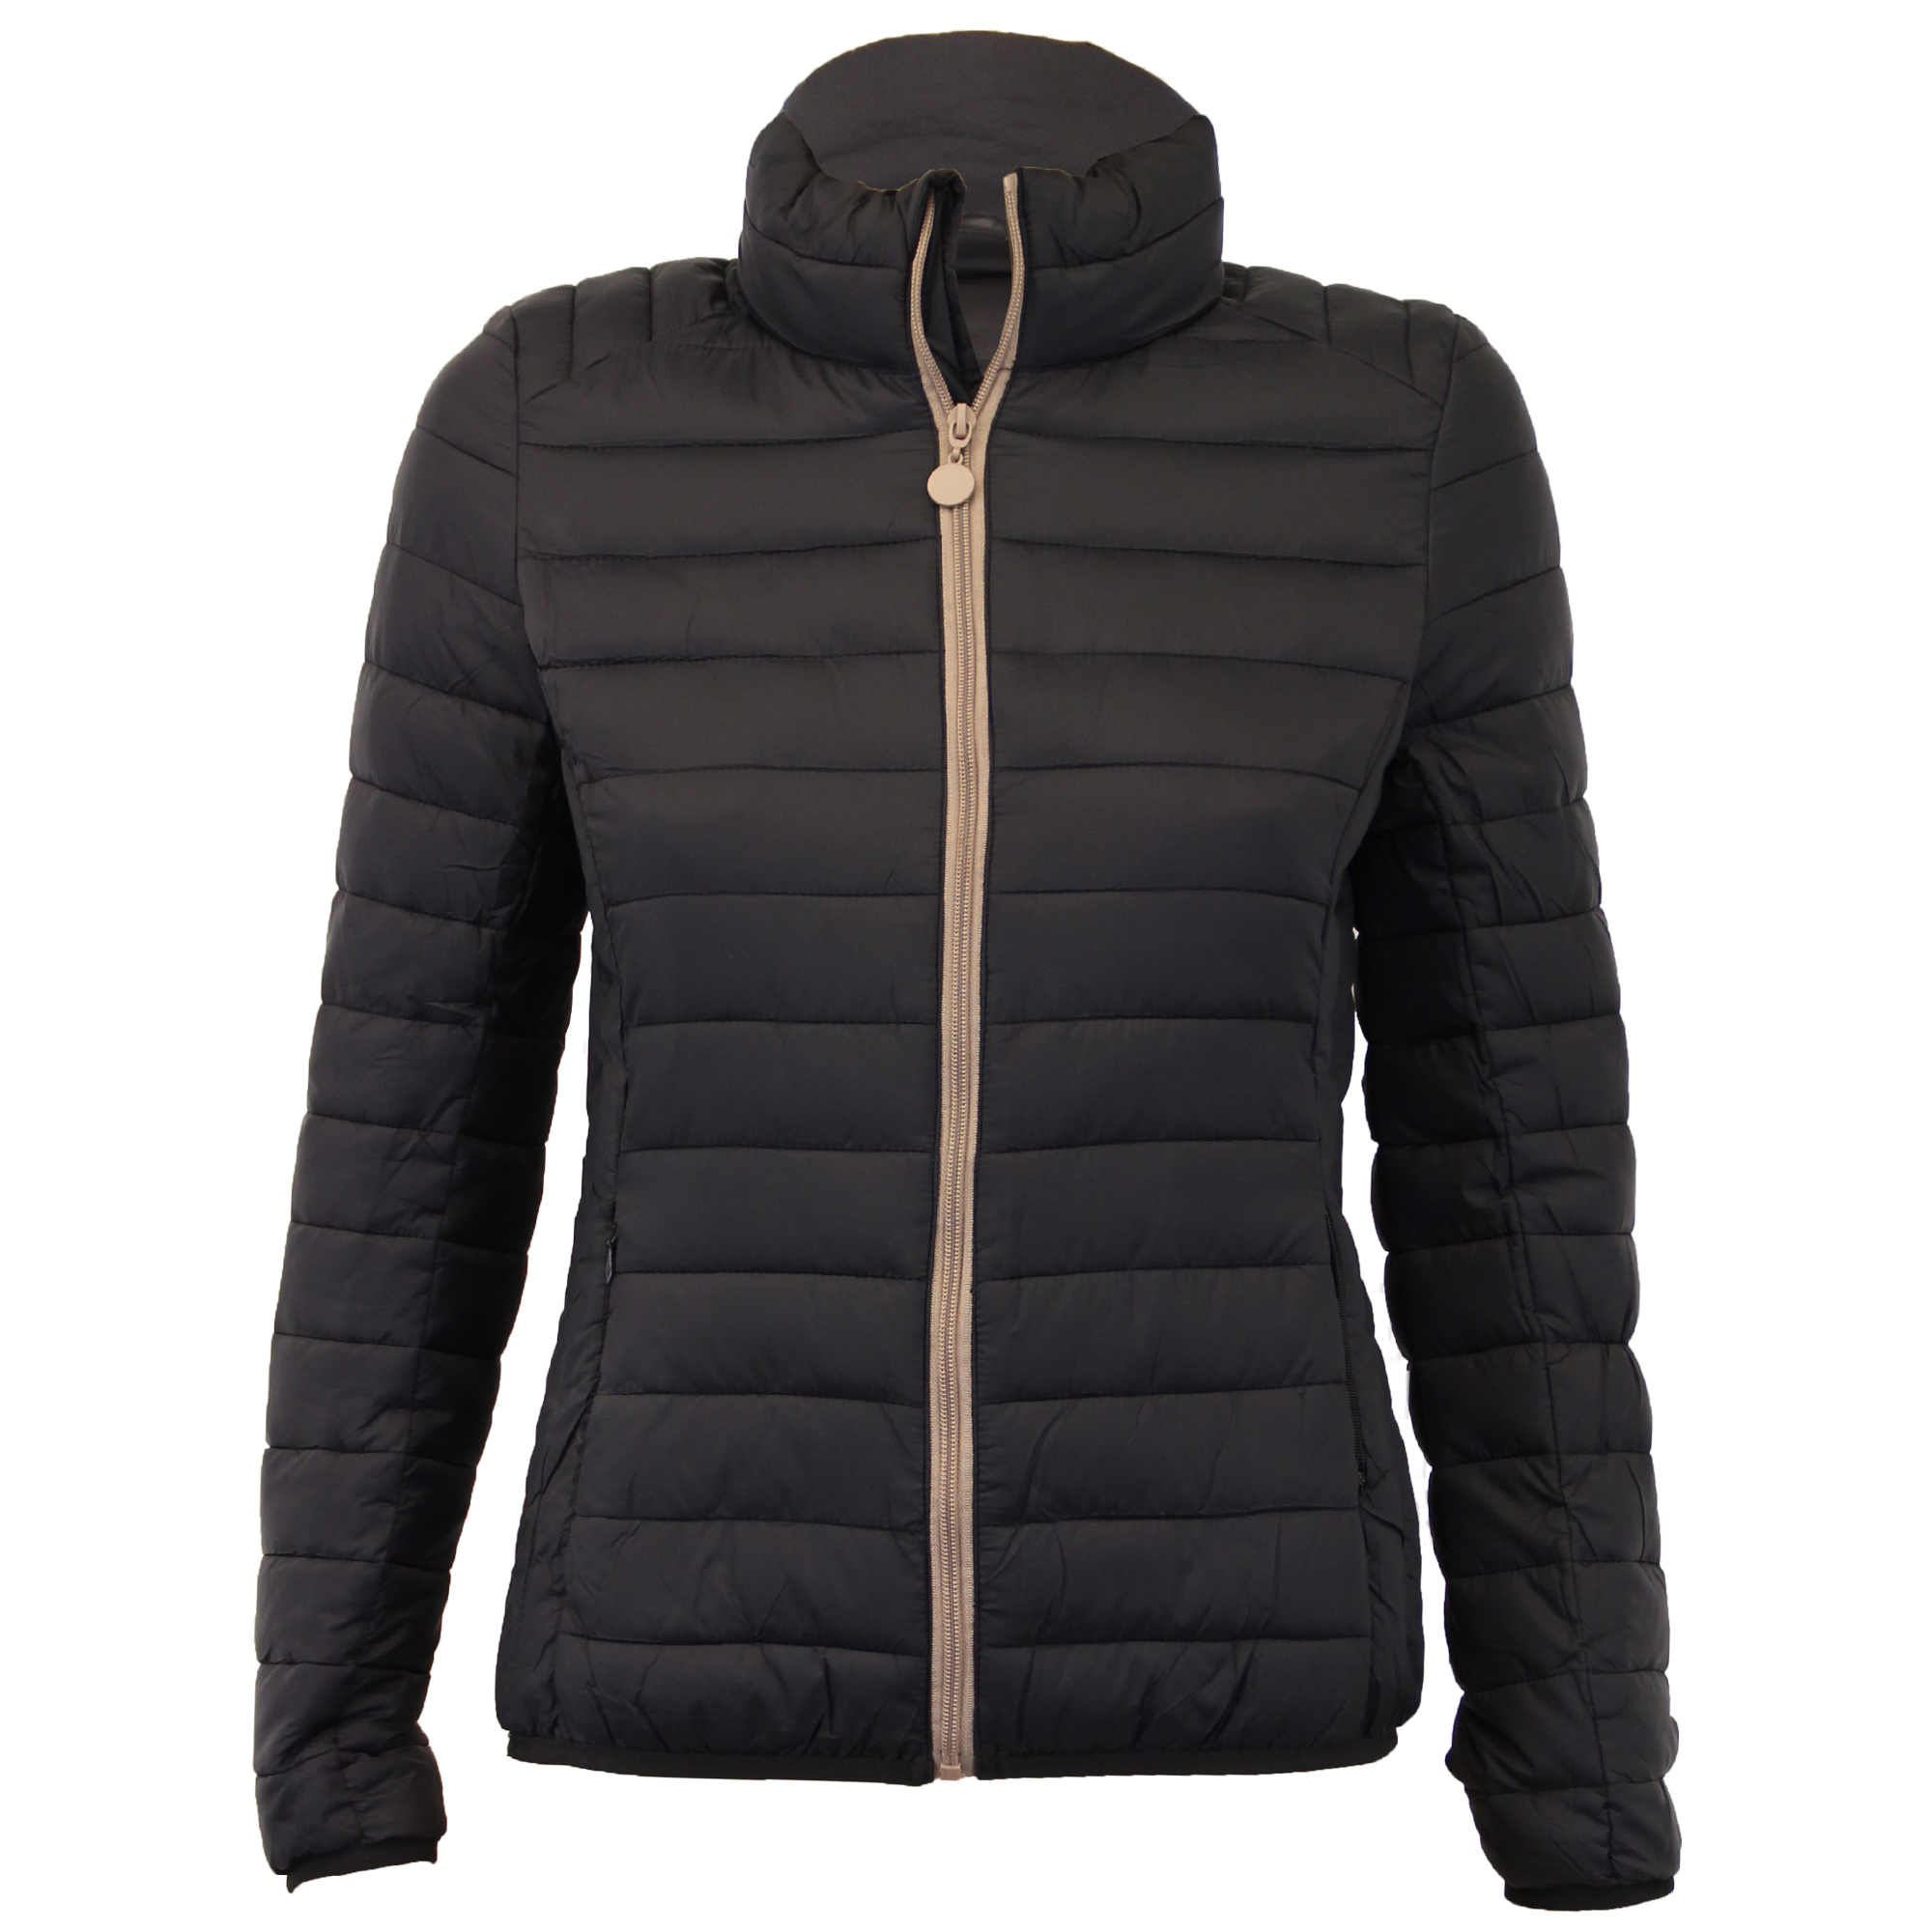 Types of women's quilted lightweight jackets. You can find these cozy items in mid-length and longer styles. Vests are also available. Most have outer shells made of synthetic materials such as nylon.